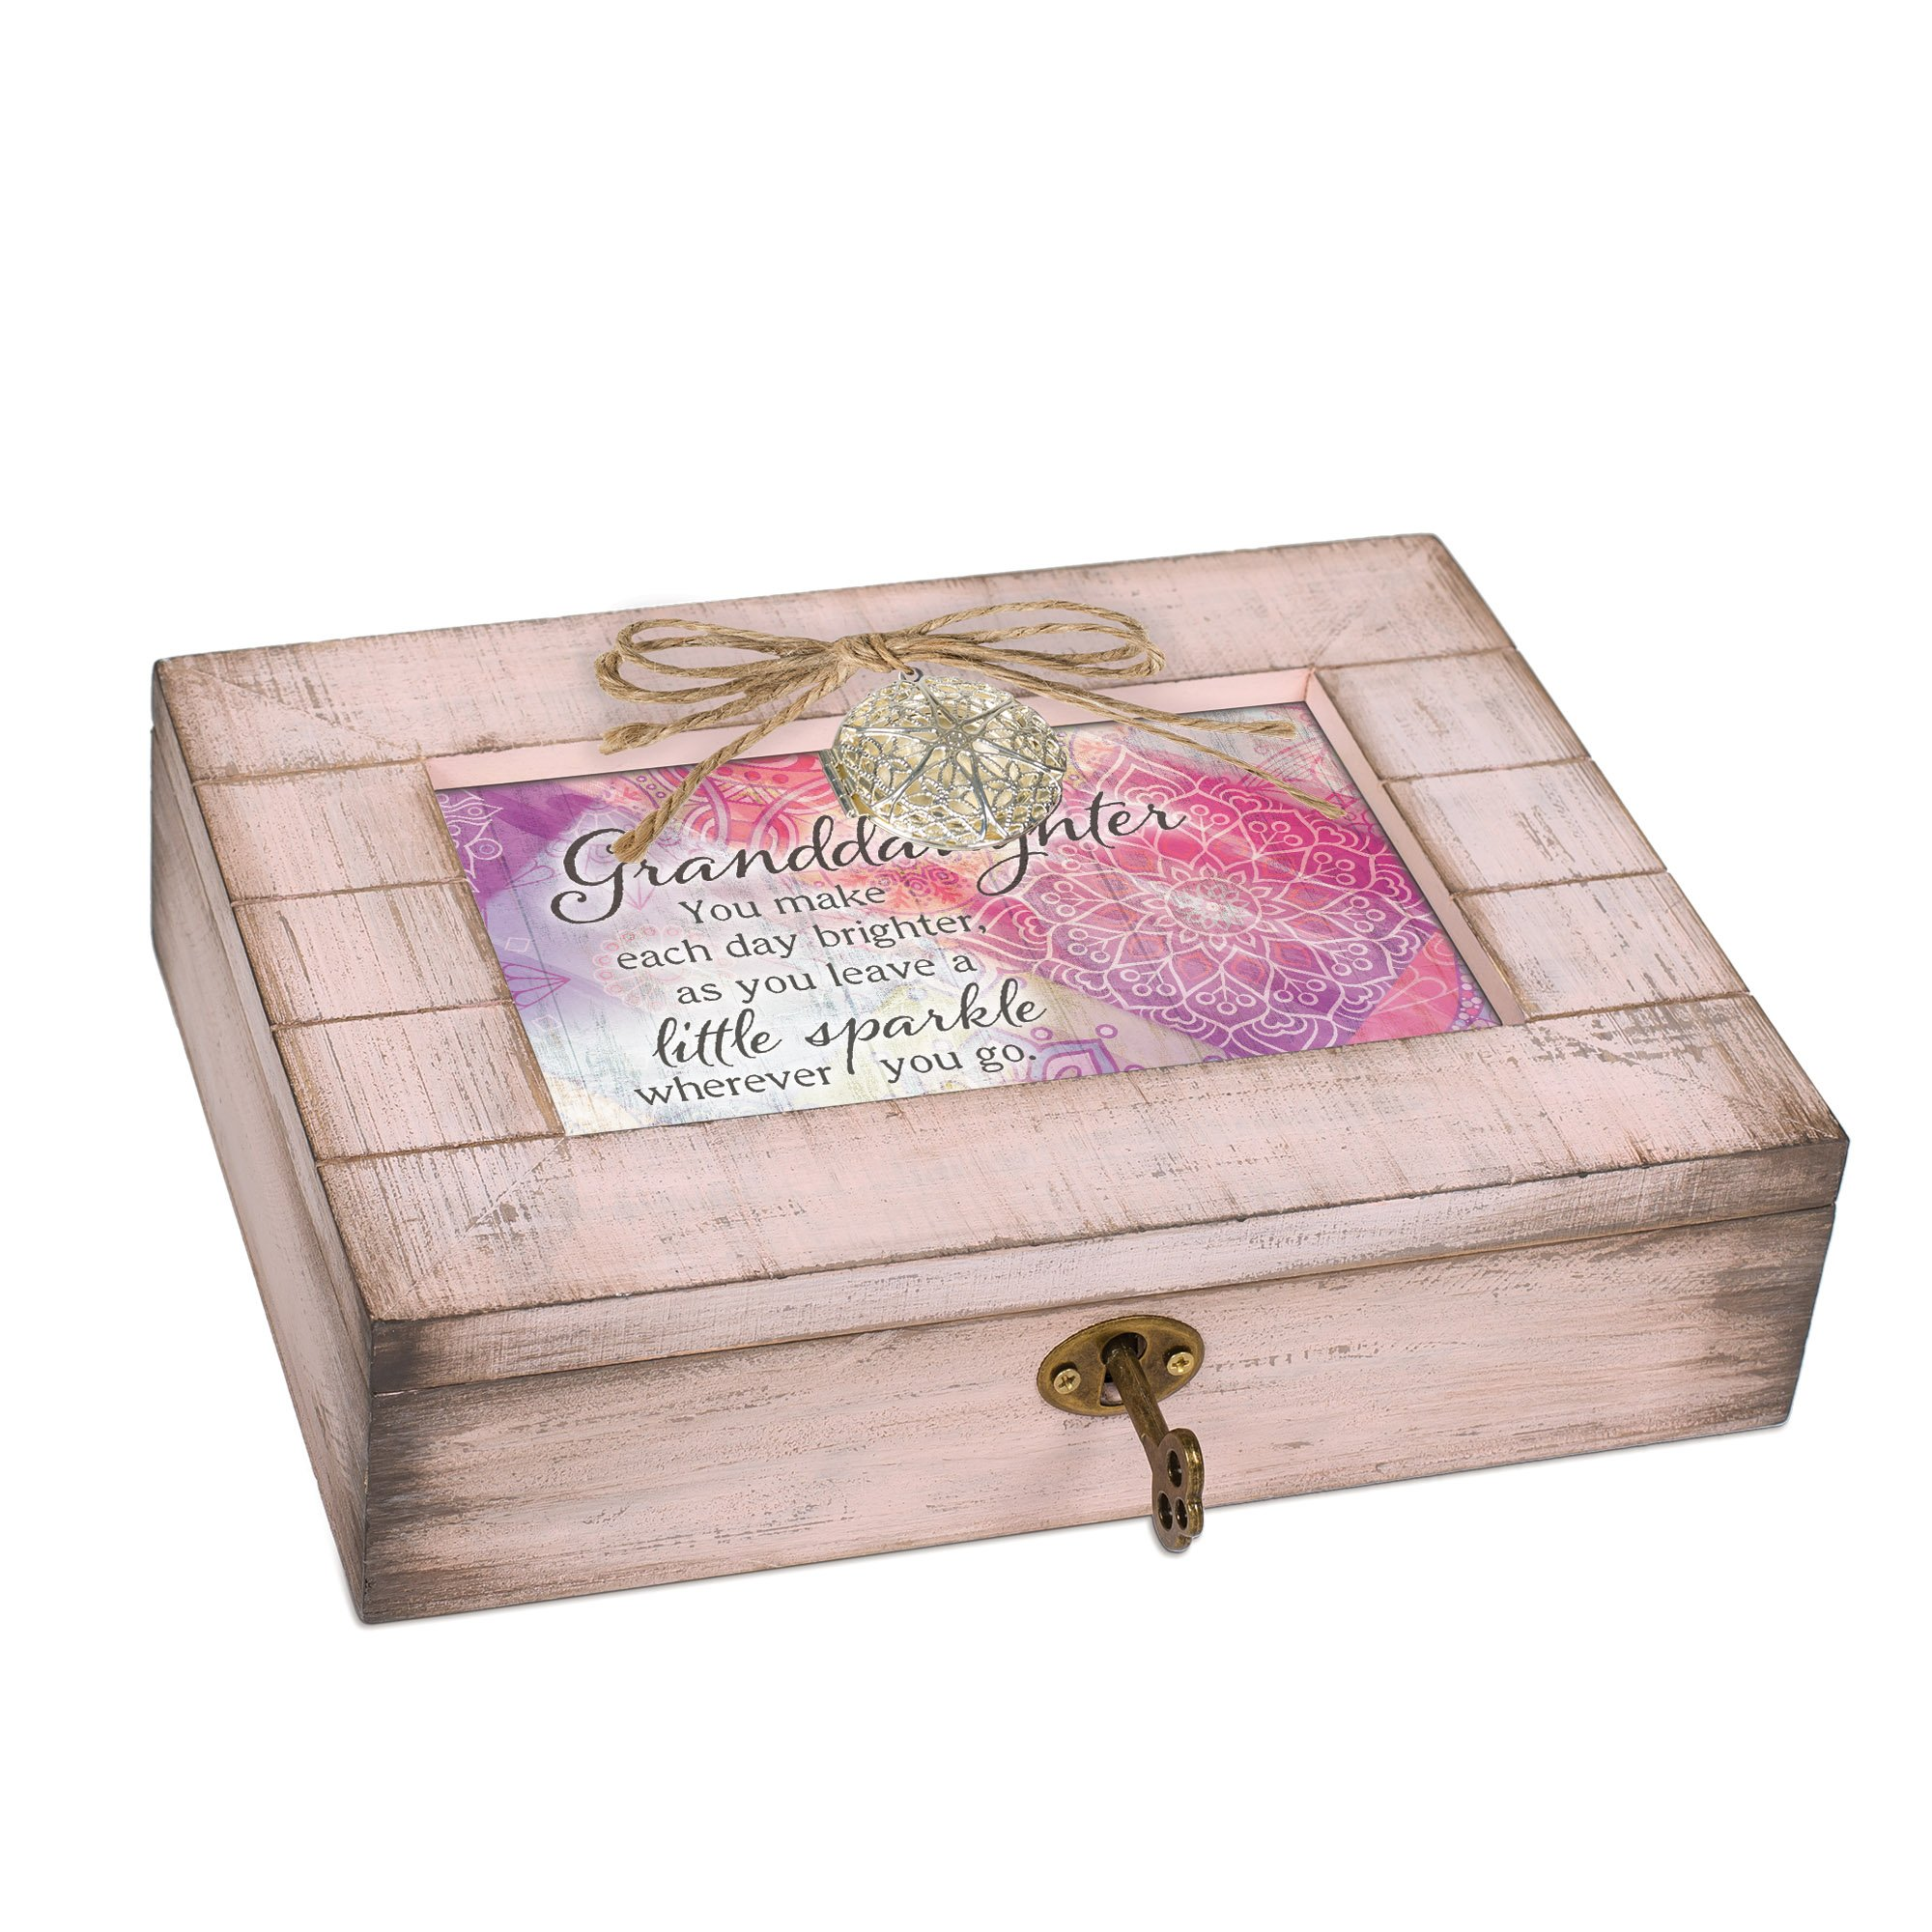 Cottage Garden Granddaughter Sparkle Blush Pink Distressed Locket Music Box Plays You are My Sunshine